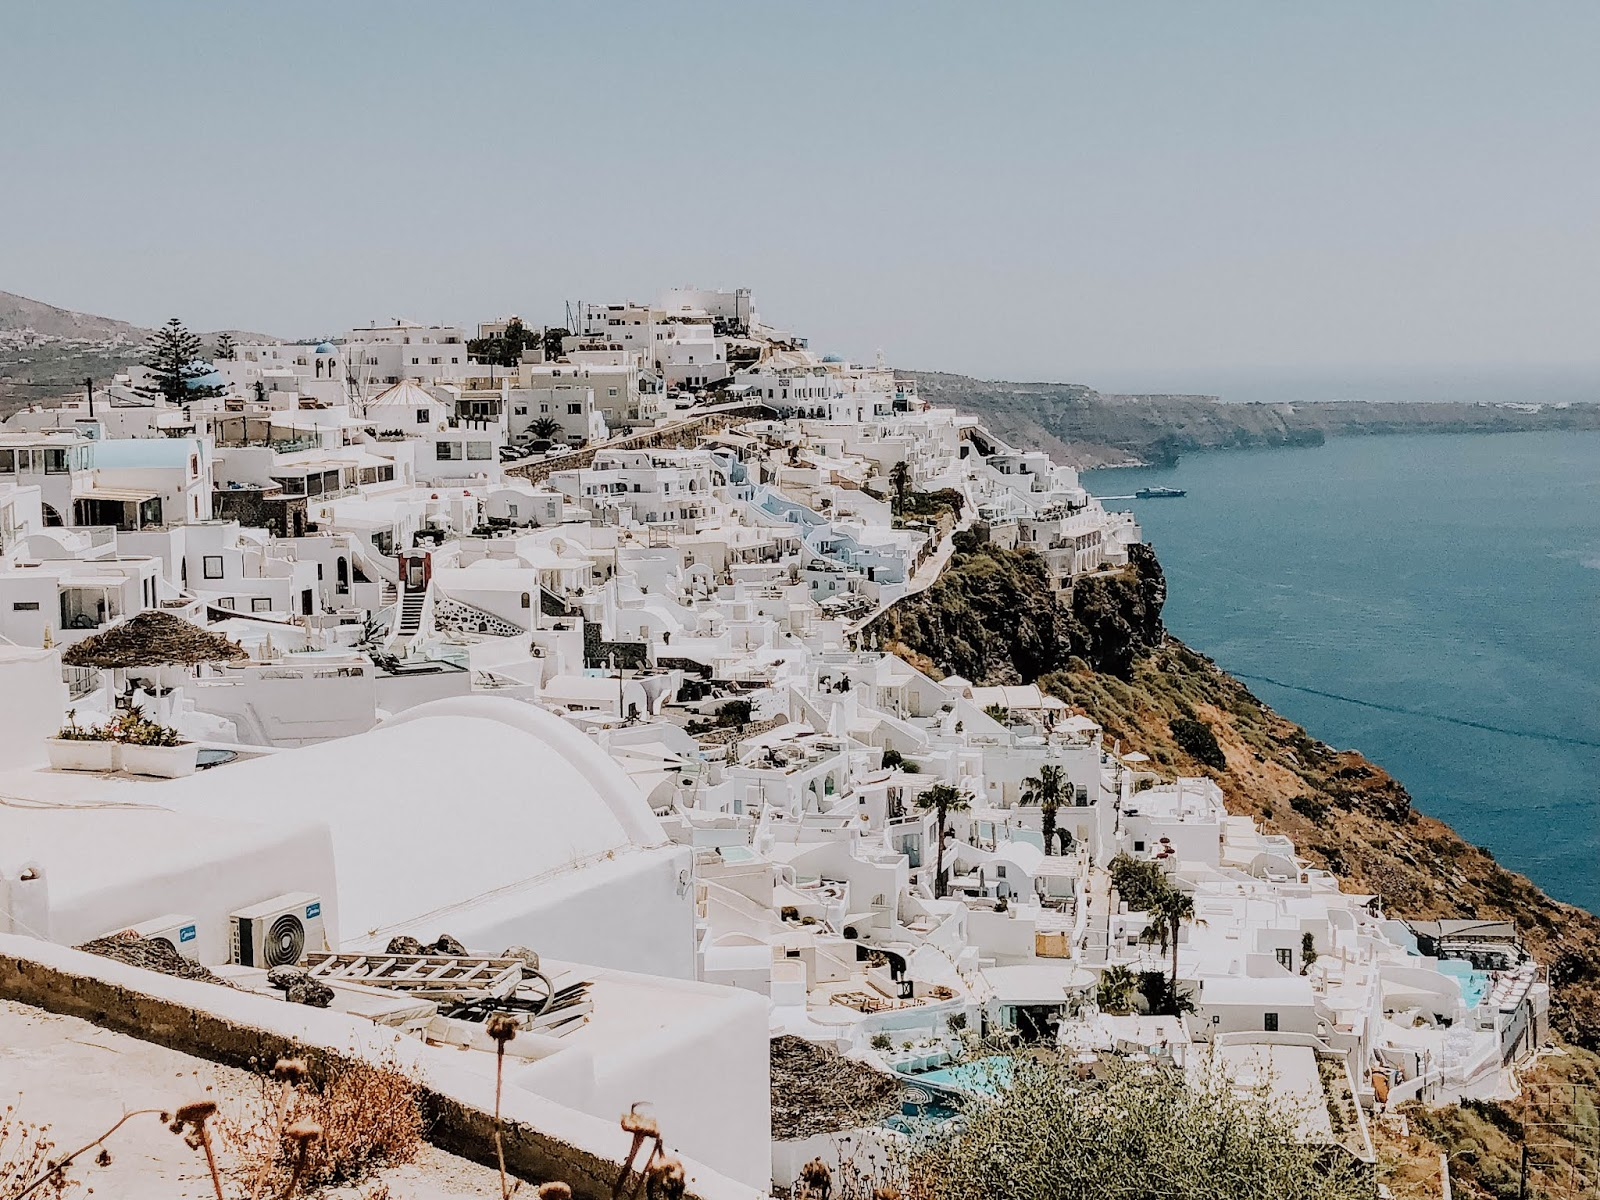 santorini-greece-island-europetrip2019-summer-vacation-with-halcruise